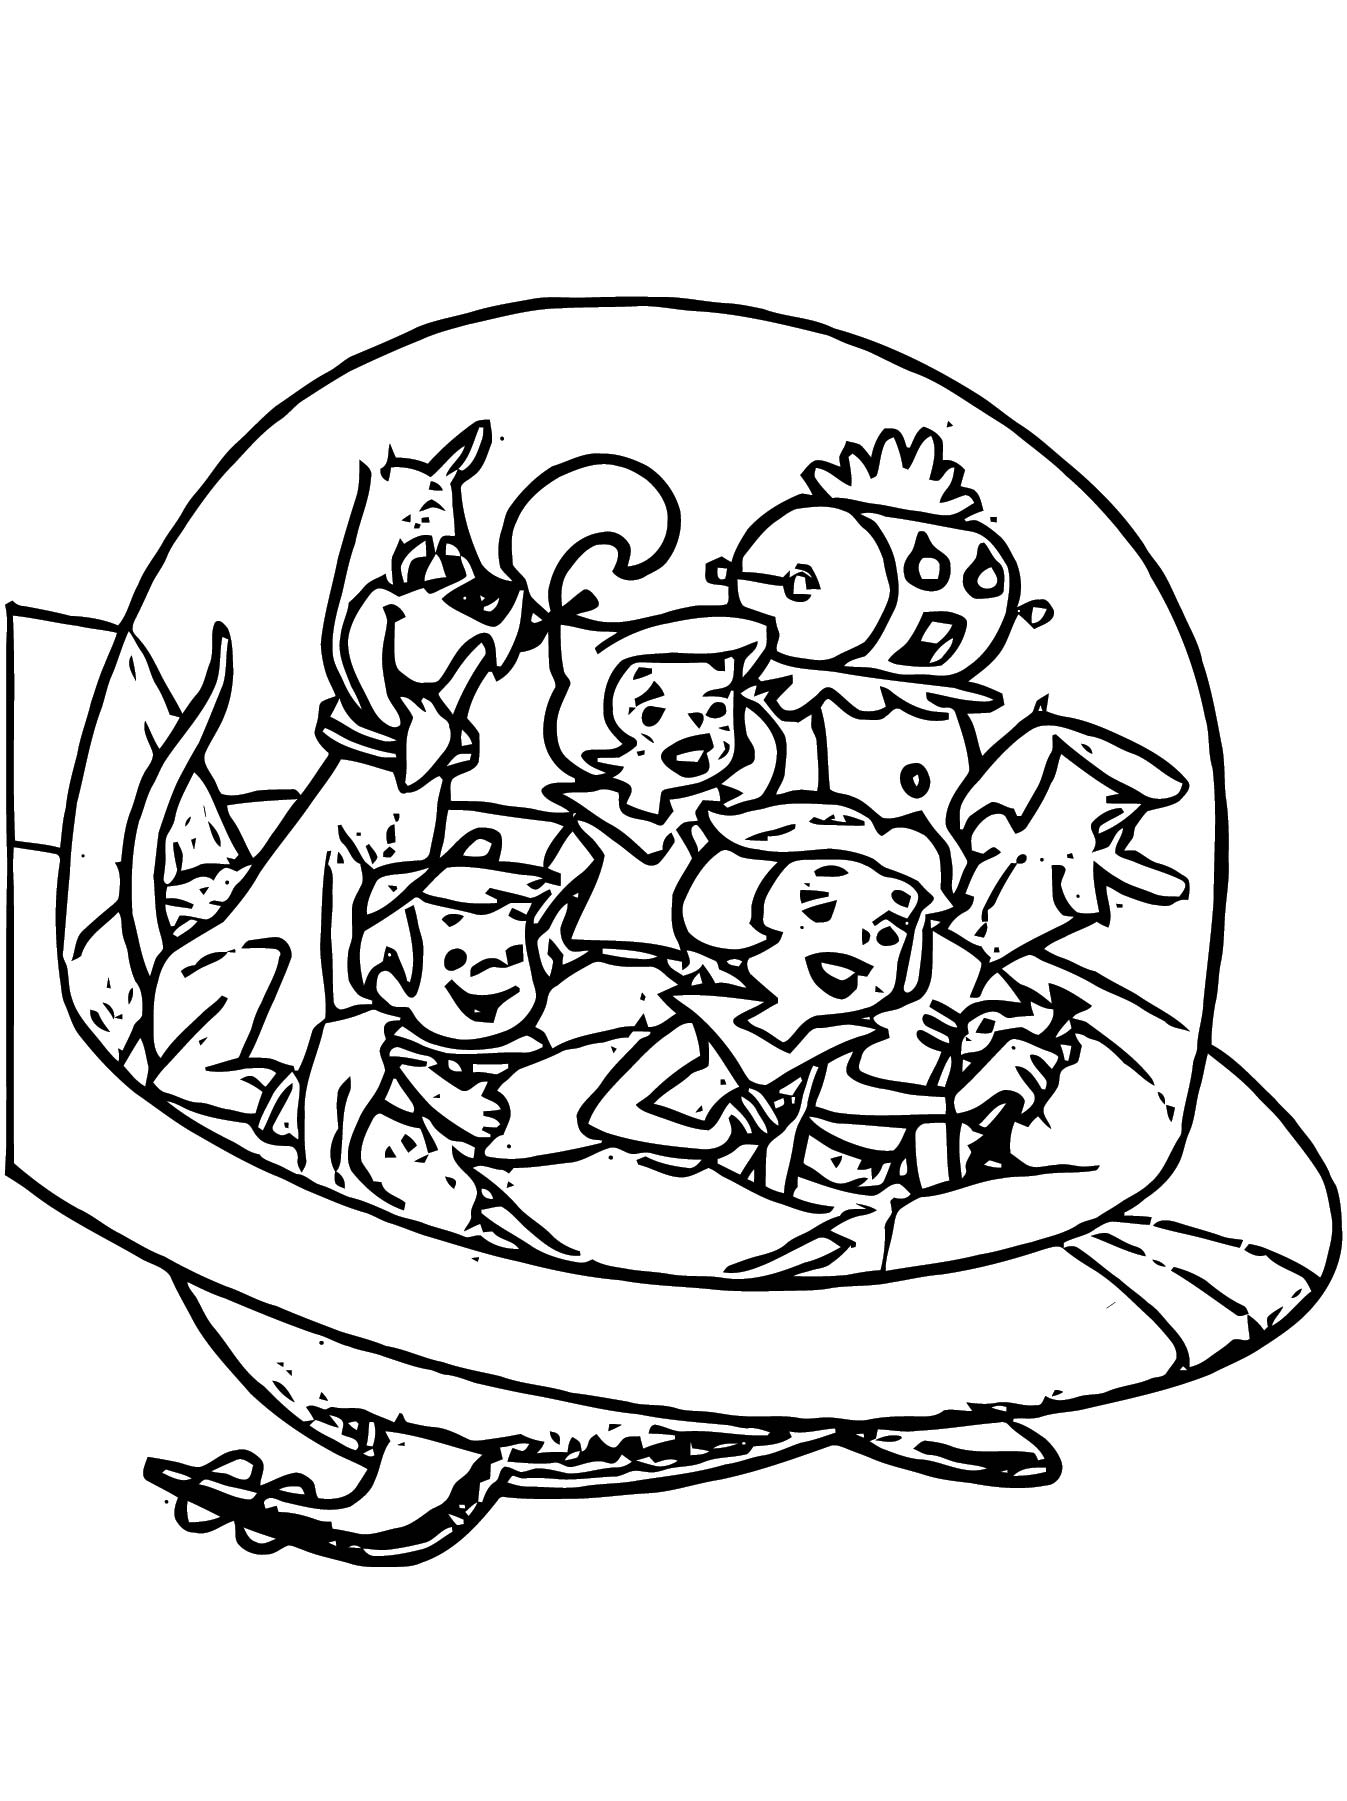 Jetsons 11 Coloring Page